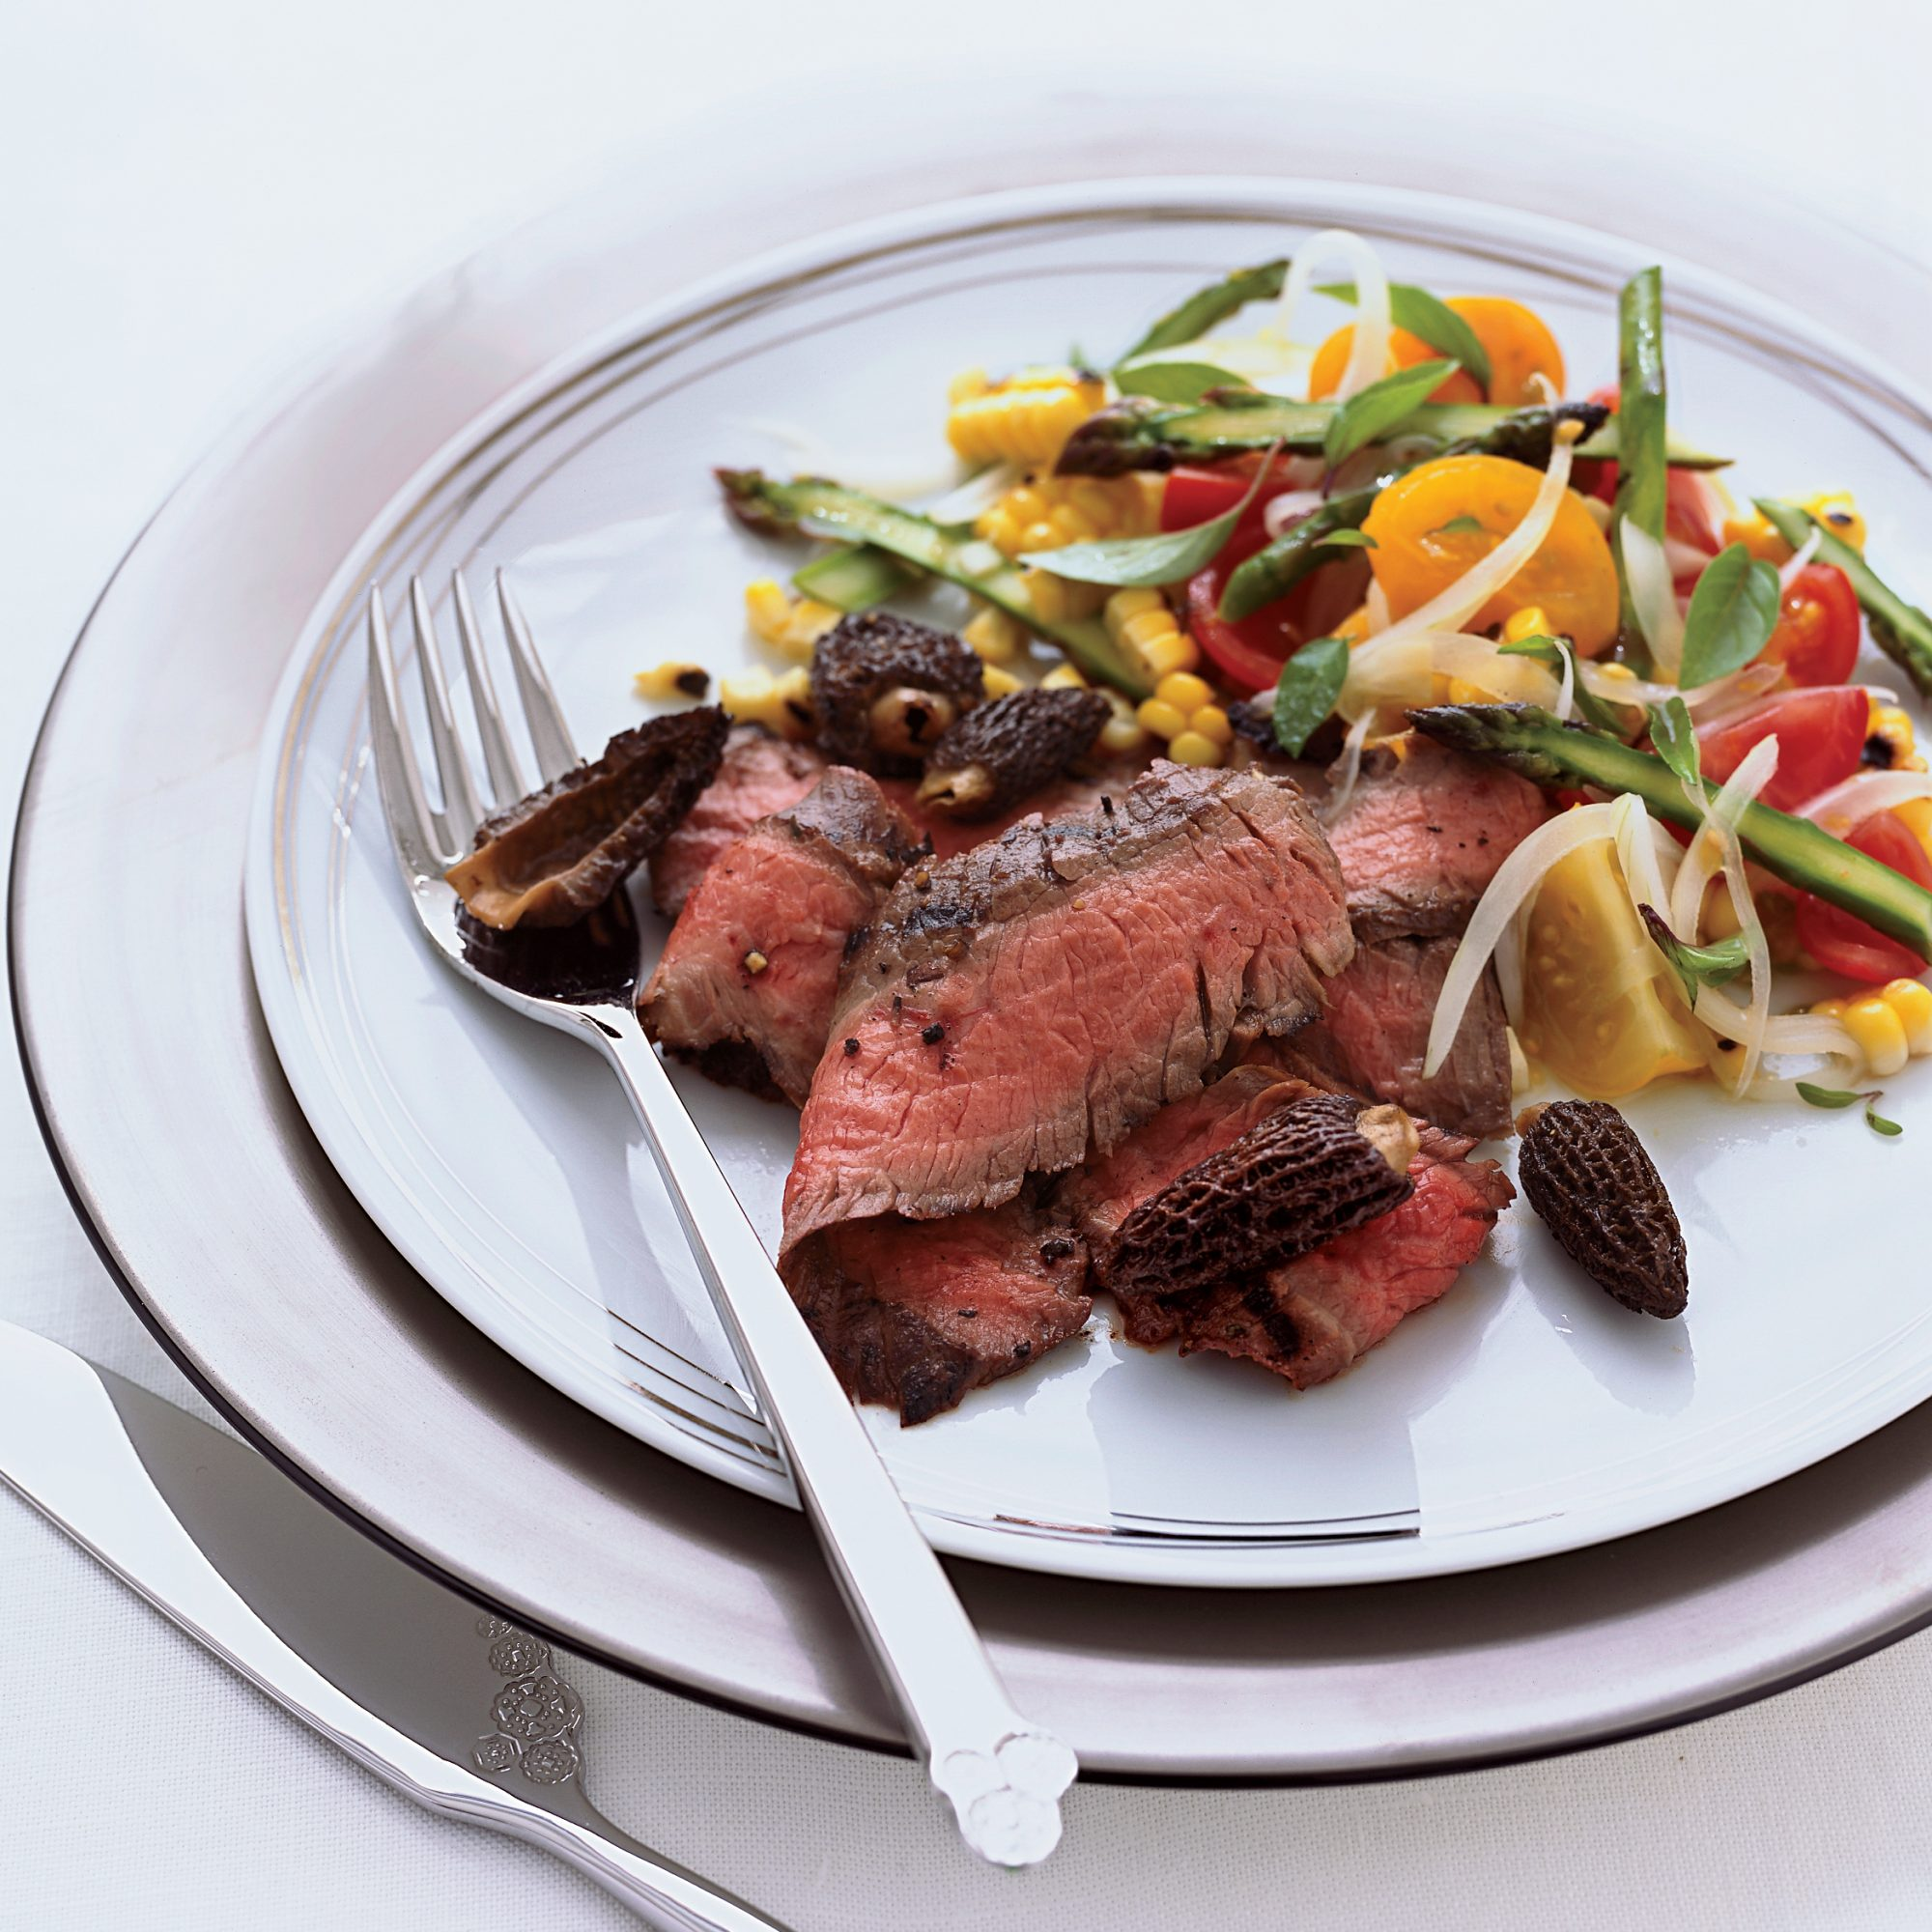 Grilled Flank Steak with Corn, Tomato and Asparagus Salad